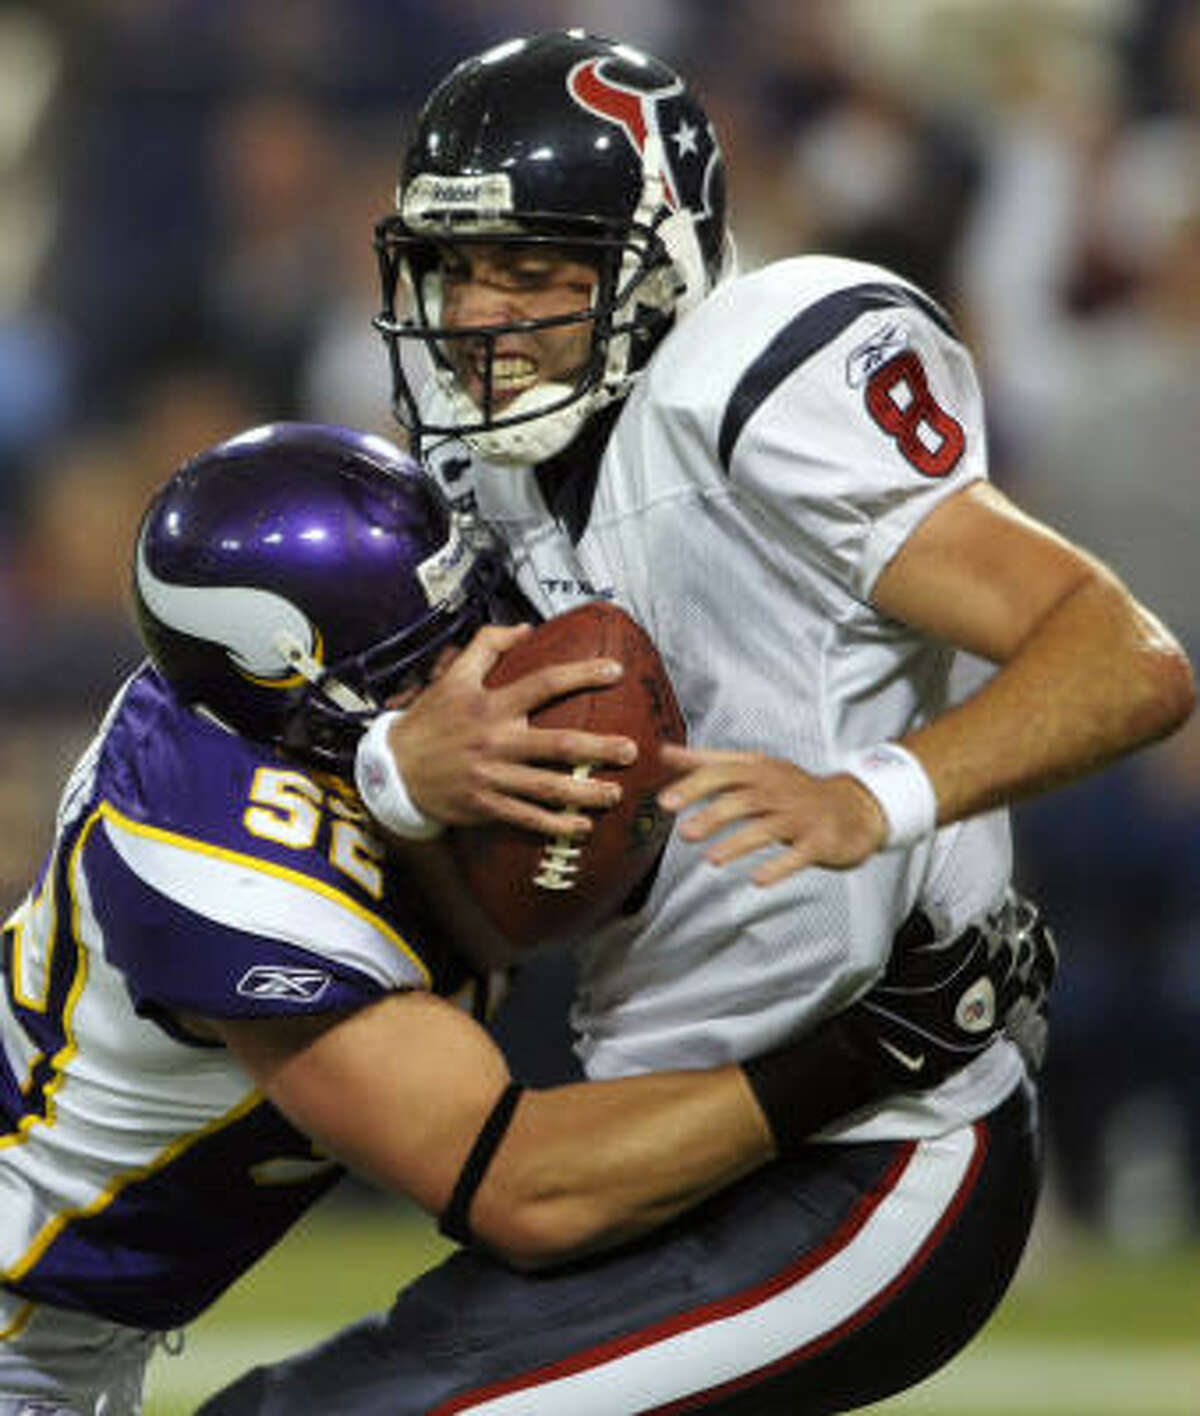 Matt Schaub , 2007-08: He was traded to the Texans from the Falcons in 2007. Schaub started in 11 games in 2007 and seven games in 2008. Record with the Texans: 7-12.